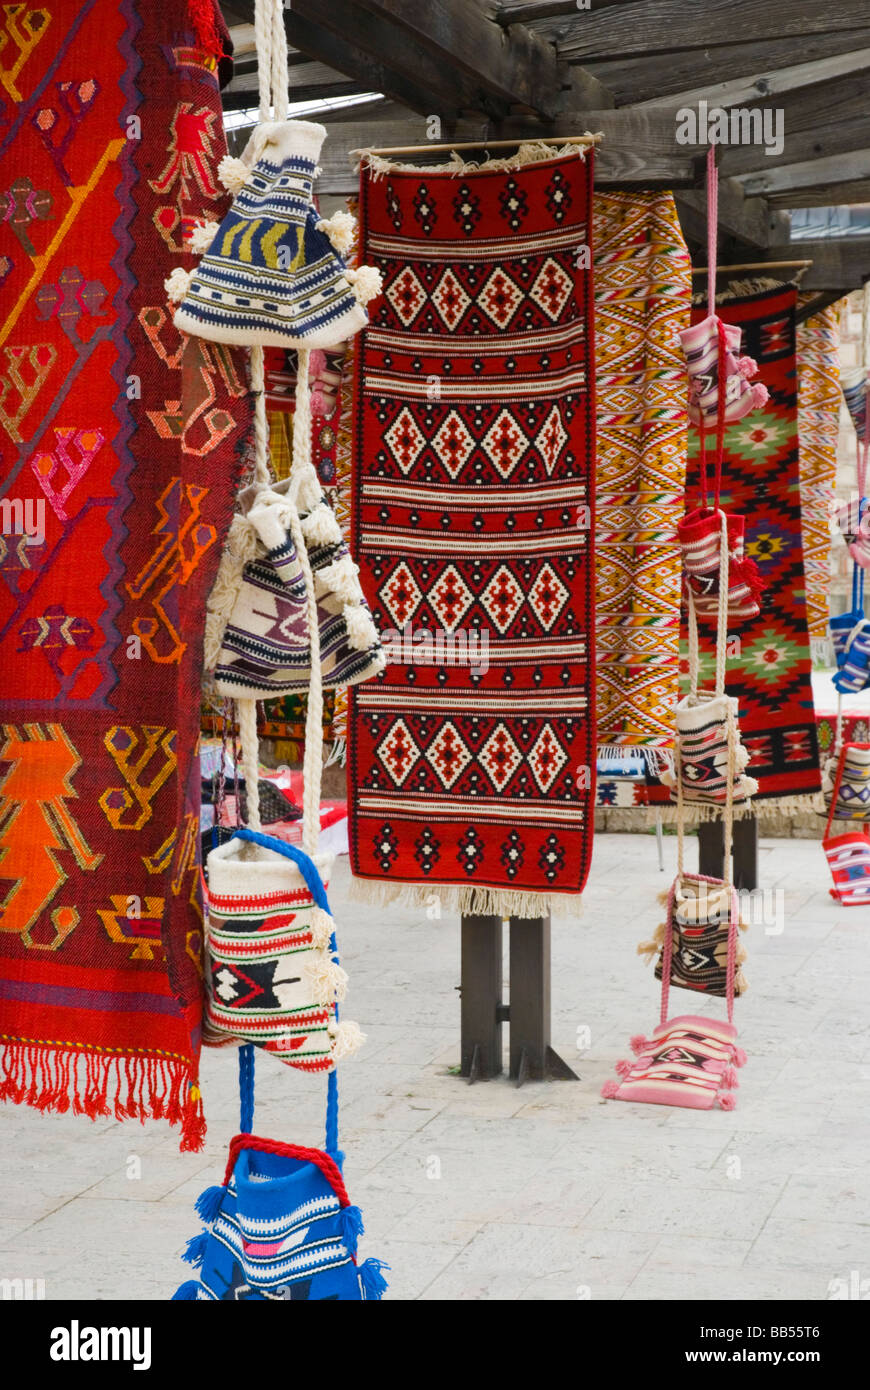 Rugs and other traditional souvenirs in Skopje Macedonia Europe - Stock Image